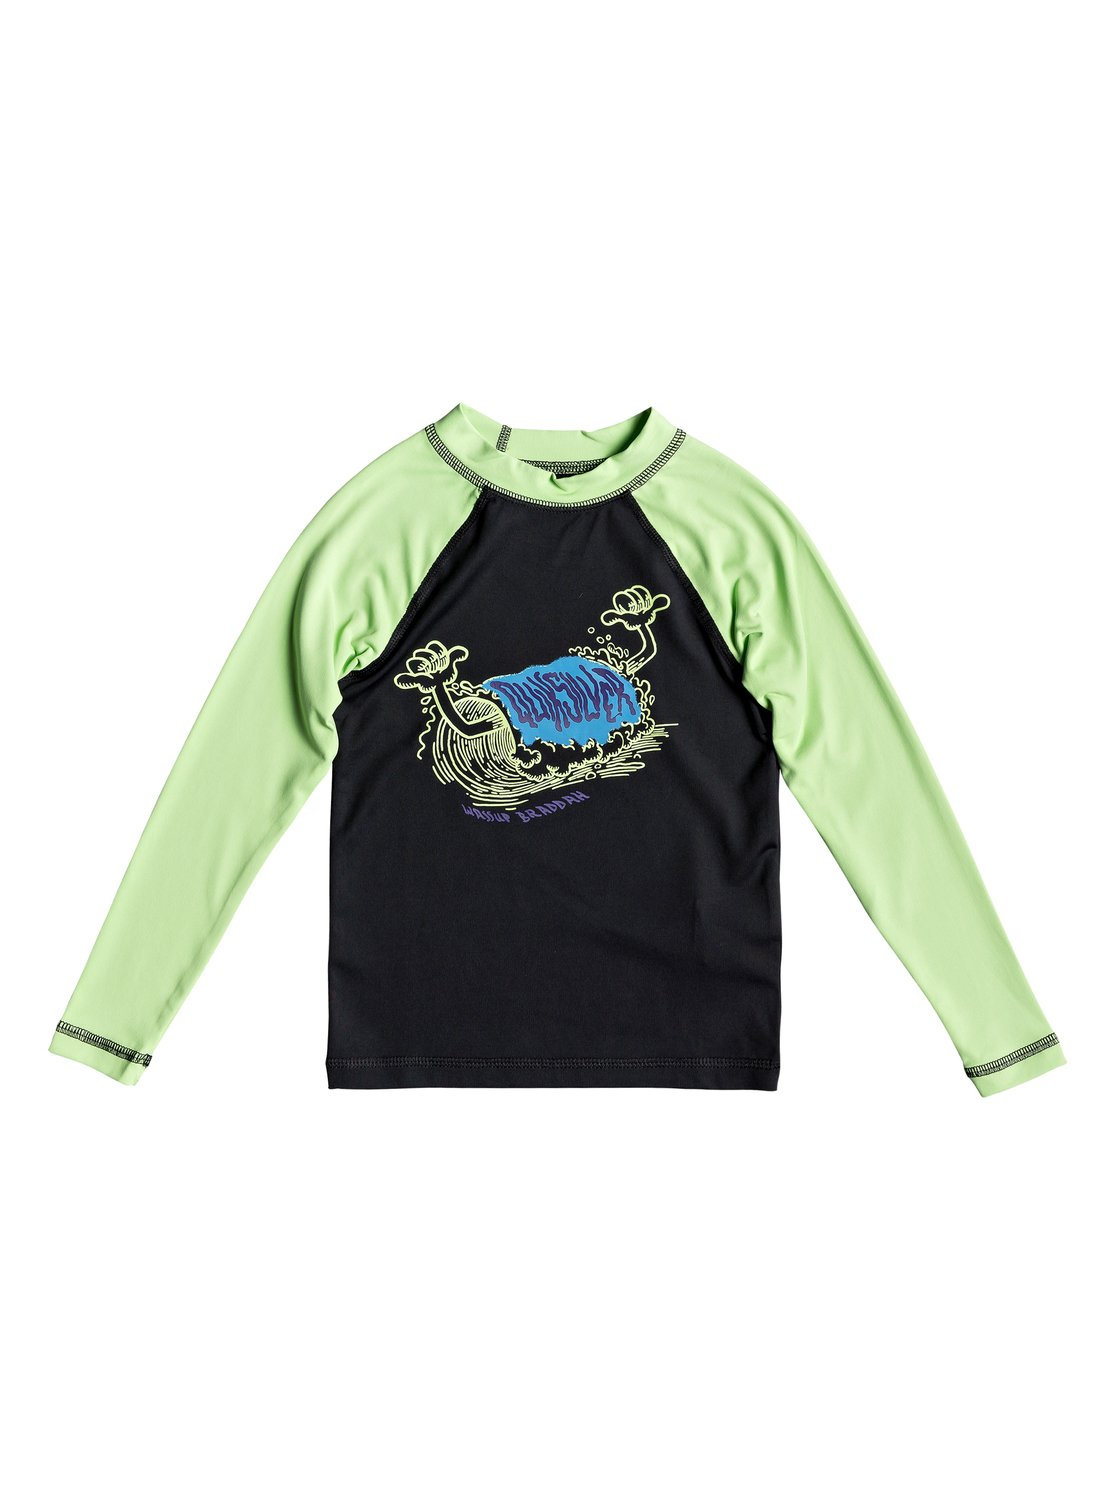 8754a073f6 Boy's 2-7 Bubble Dreams Long Sleeve UPF 50 Rashguard